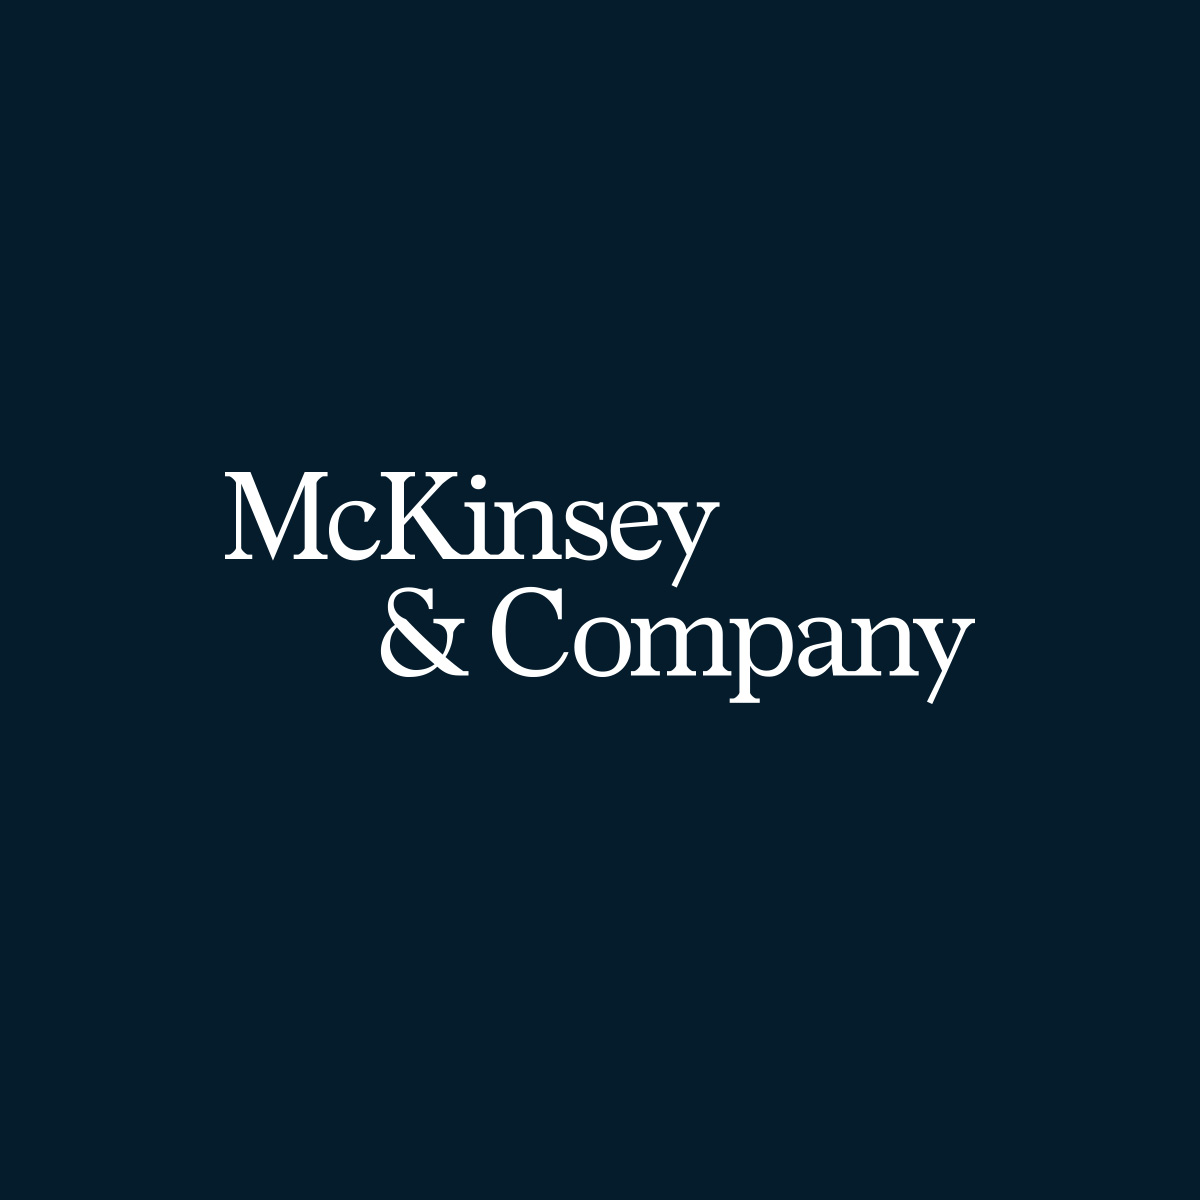 McKinsey Global Services